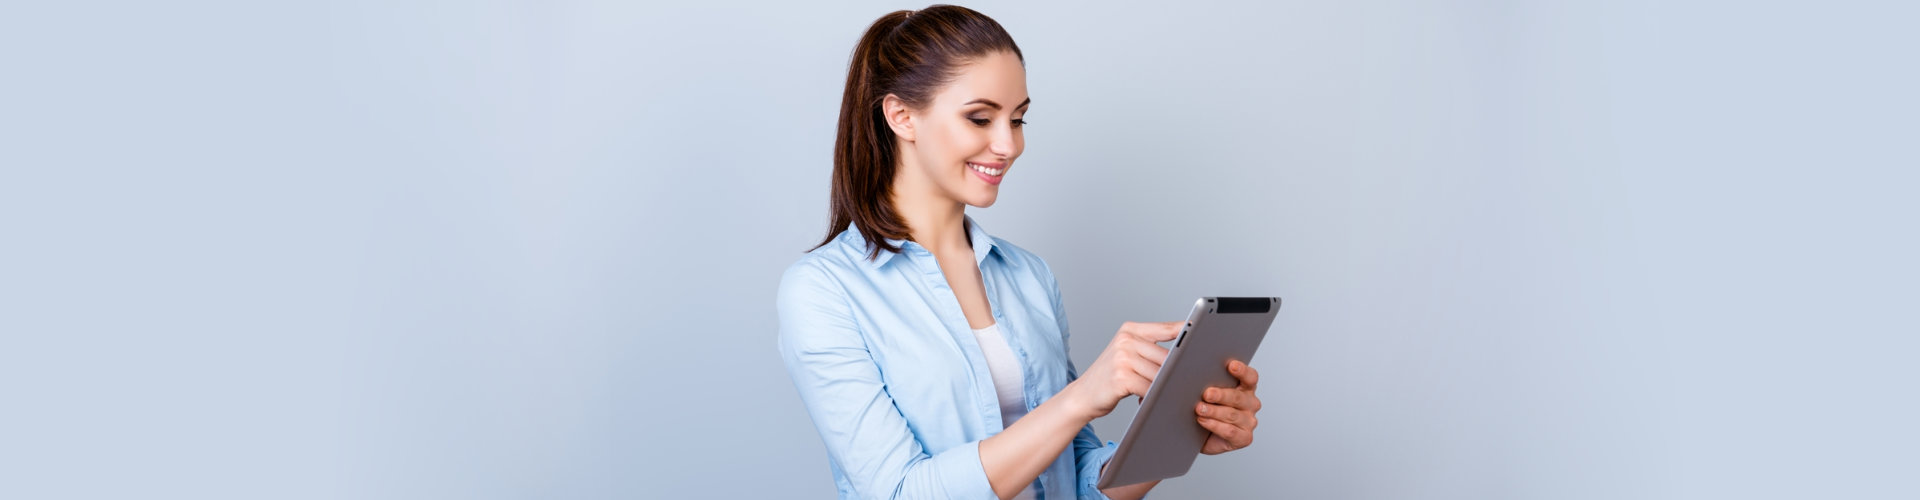 a woman holding a tablet